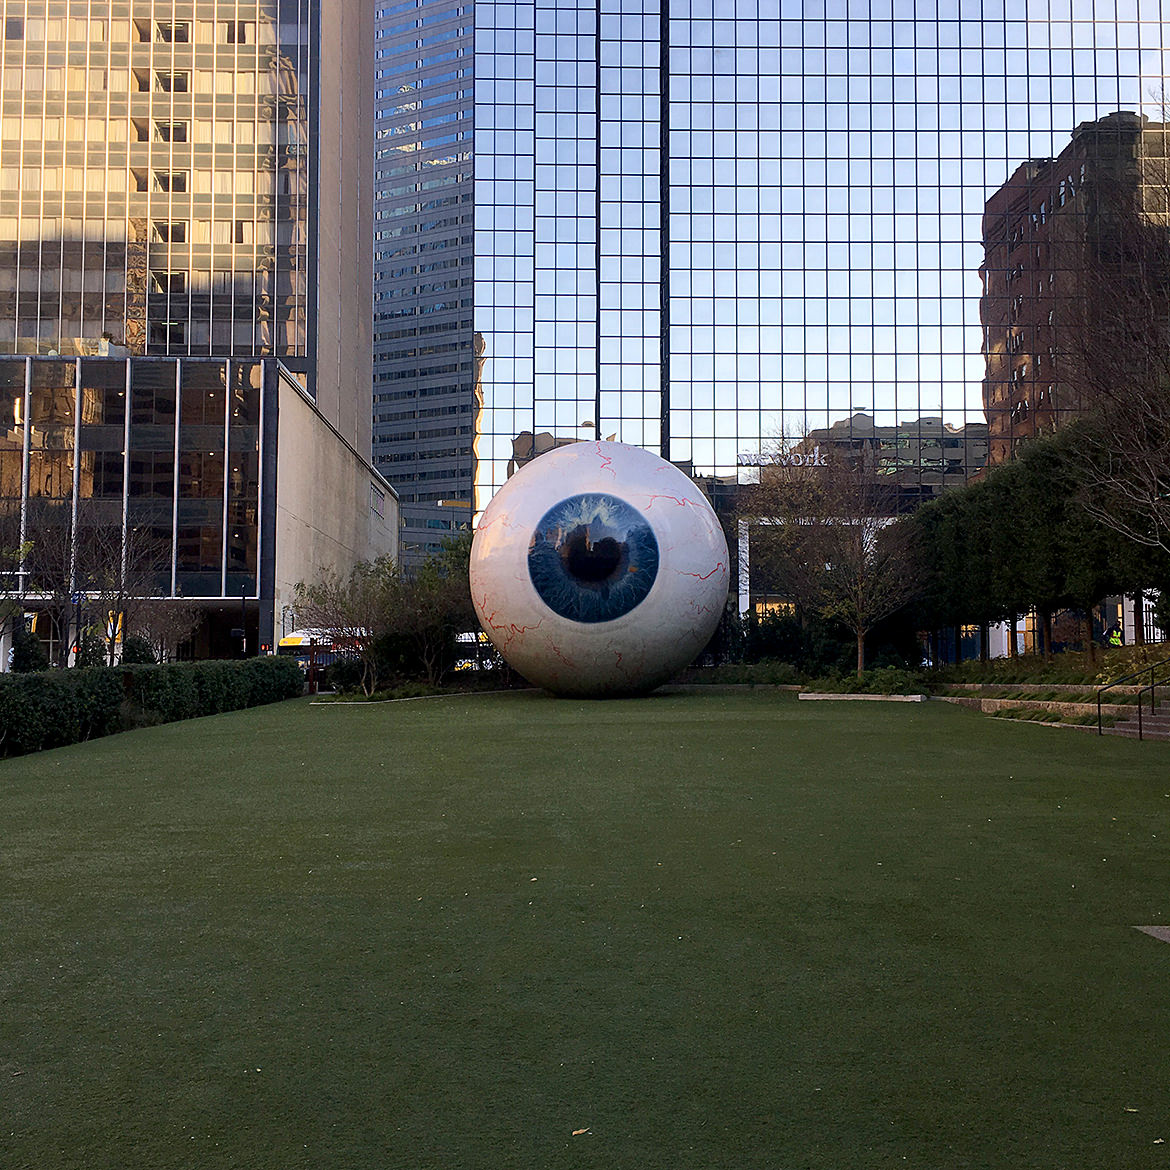 a giant fiberglass sculpture of a human eye, long view